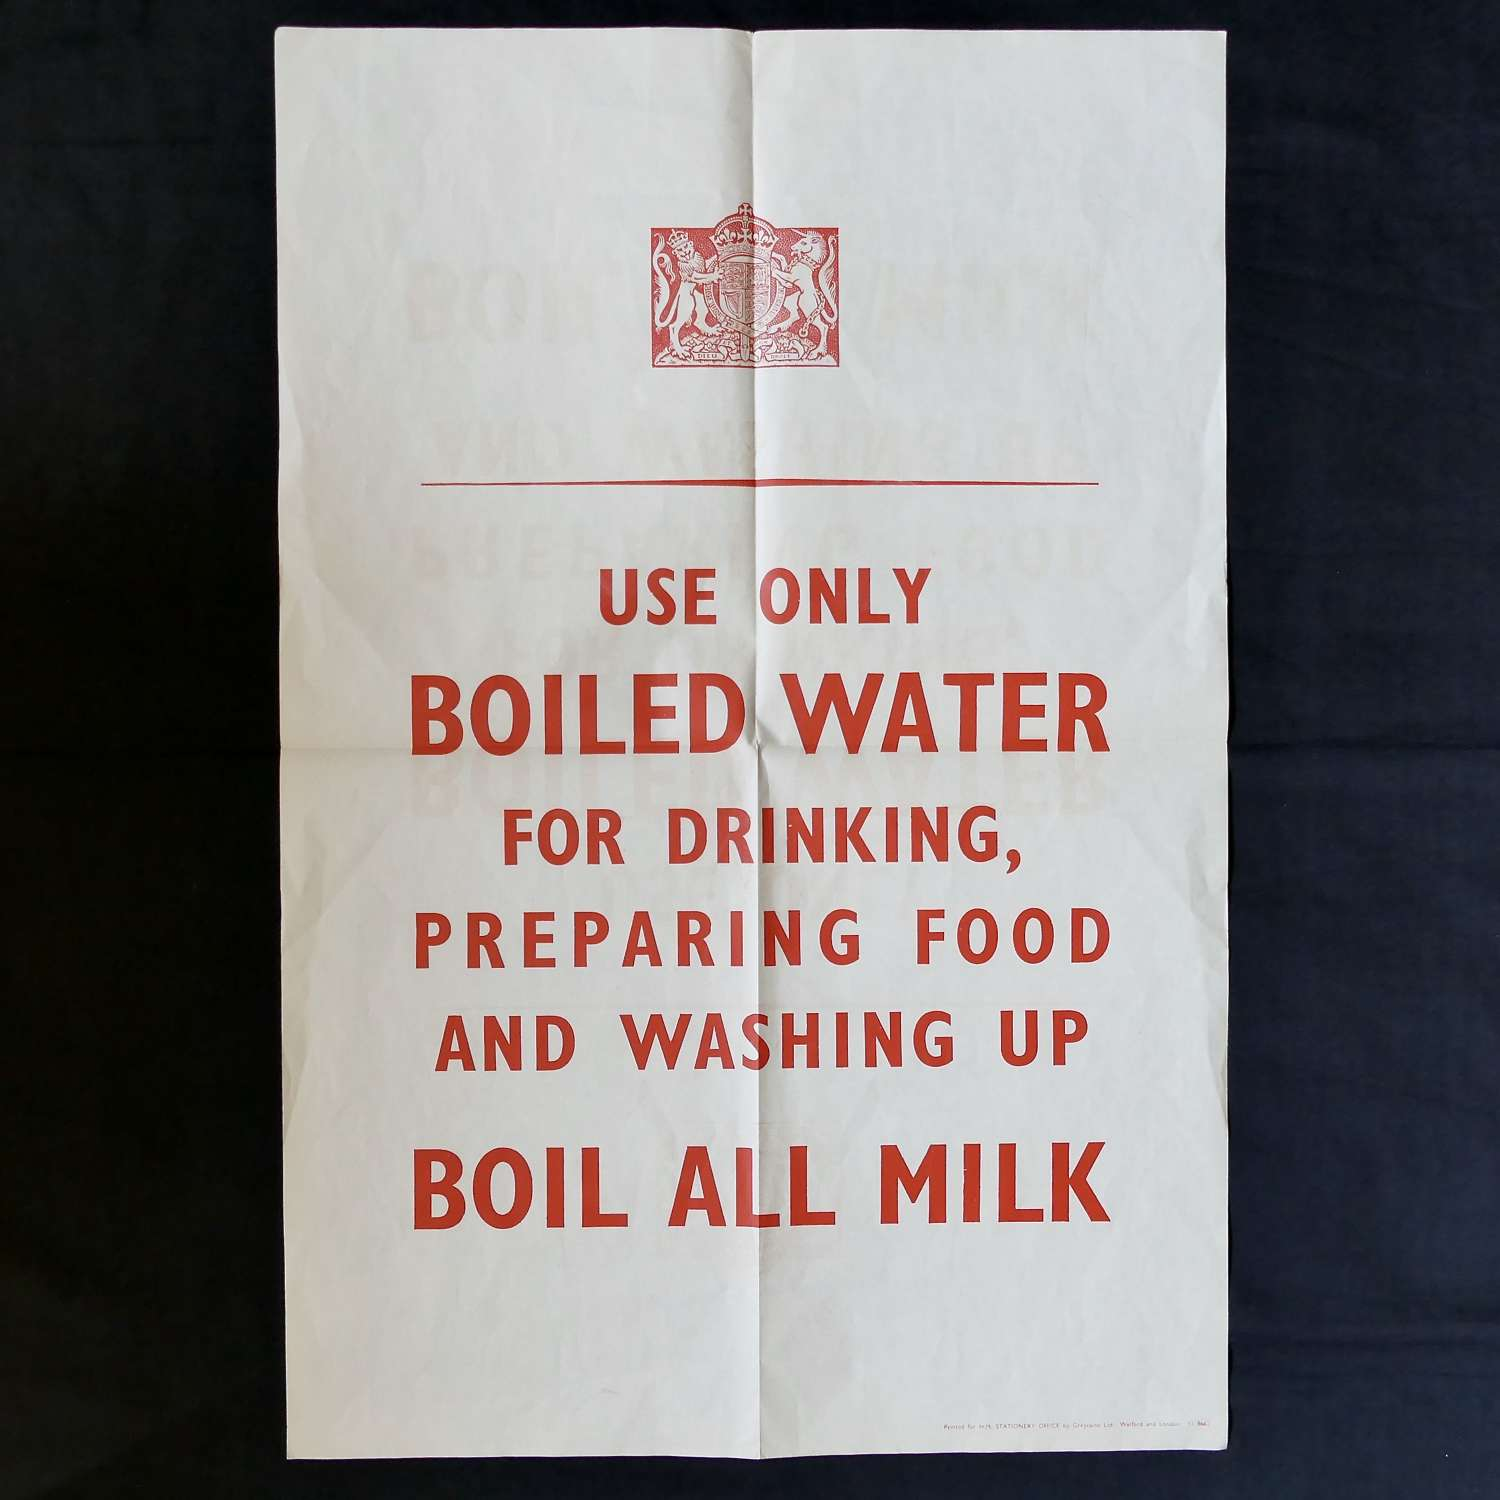 WW2 water use poster